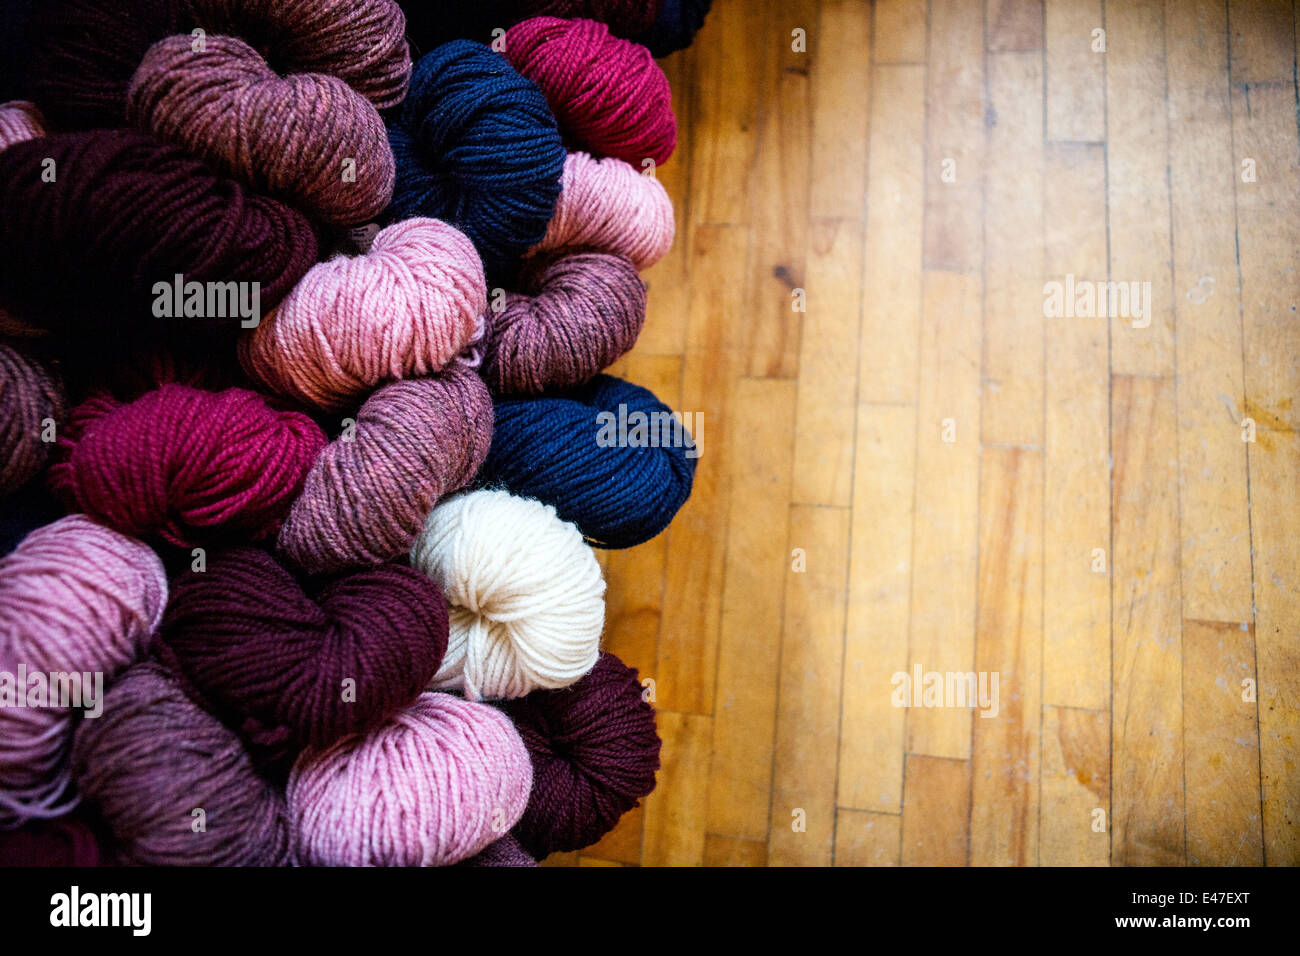 Rattan Yarn Coloured Skeins Of Wool Stock Photos & Coloured Skeins Of